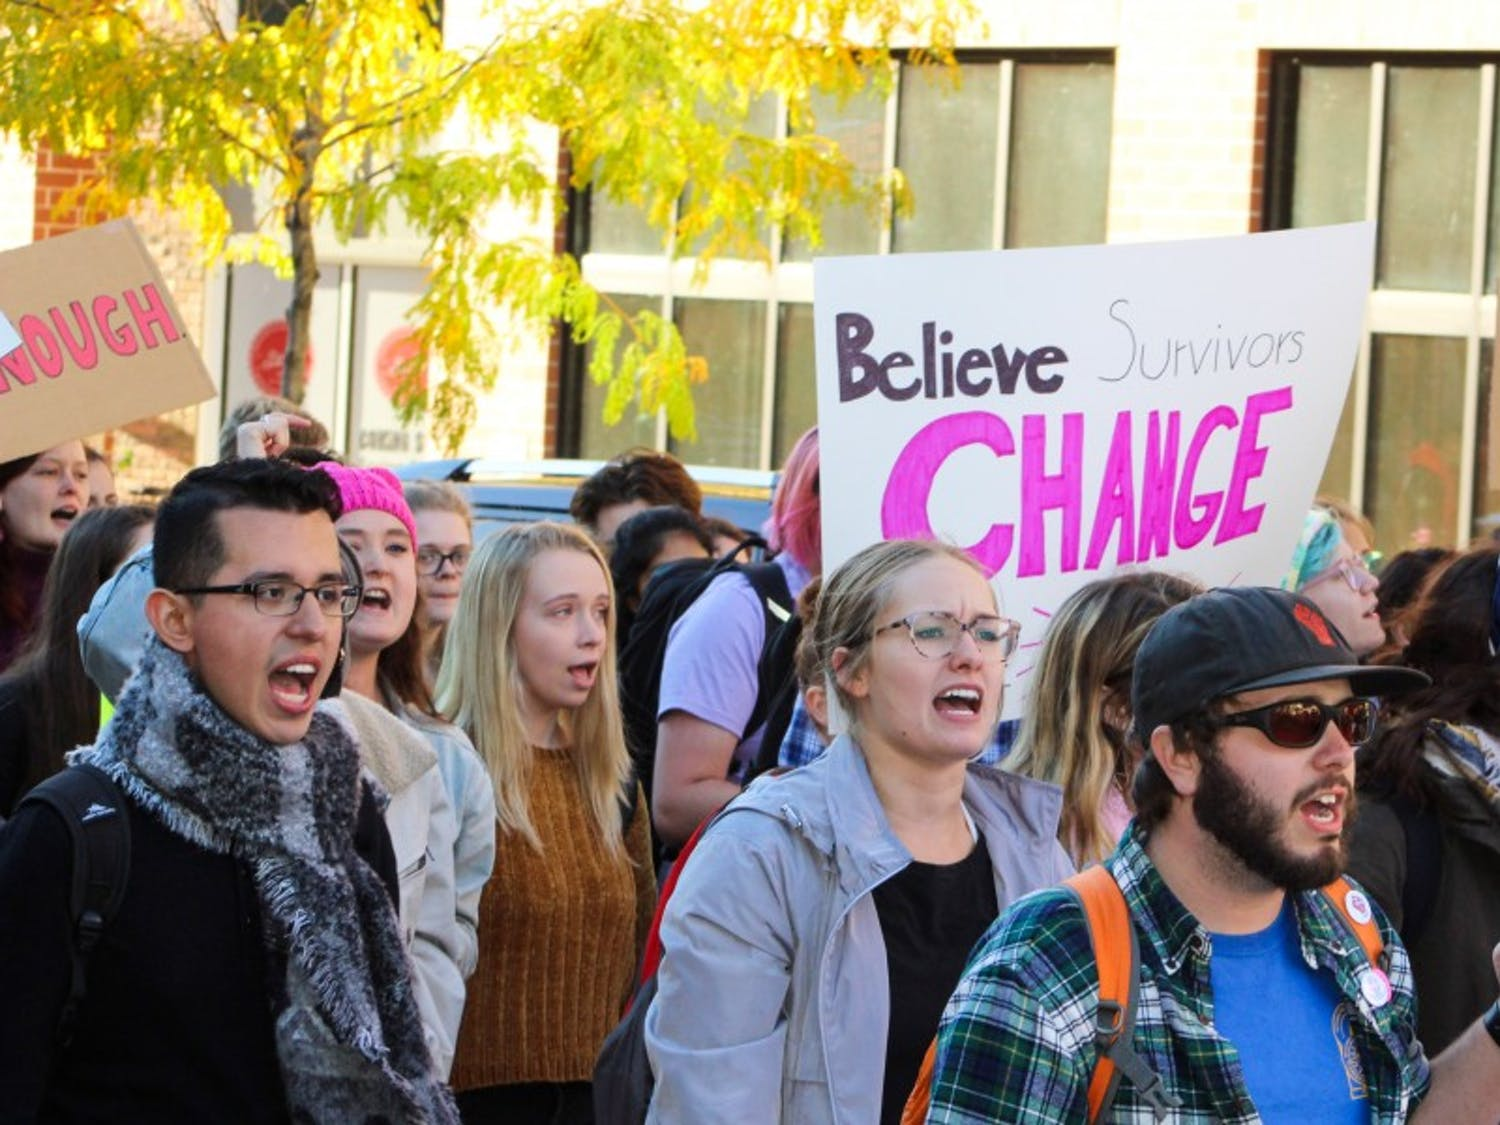 Students have shown both disdain and support for Supreme Court Justice Brett Kavanaugh.